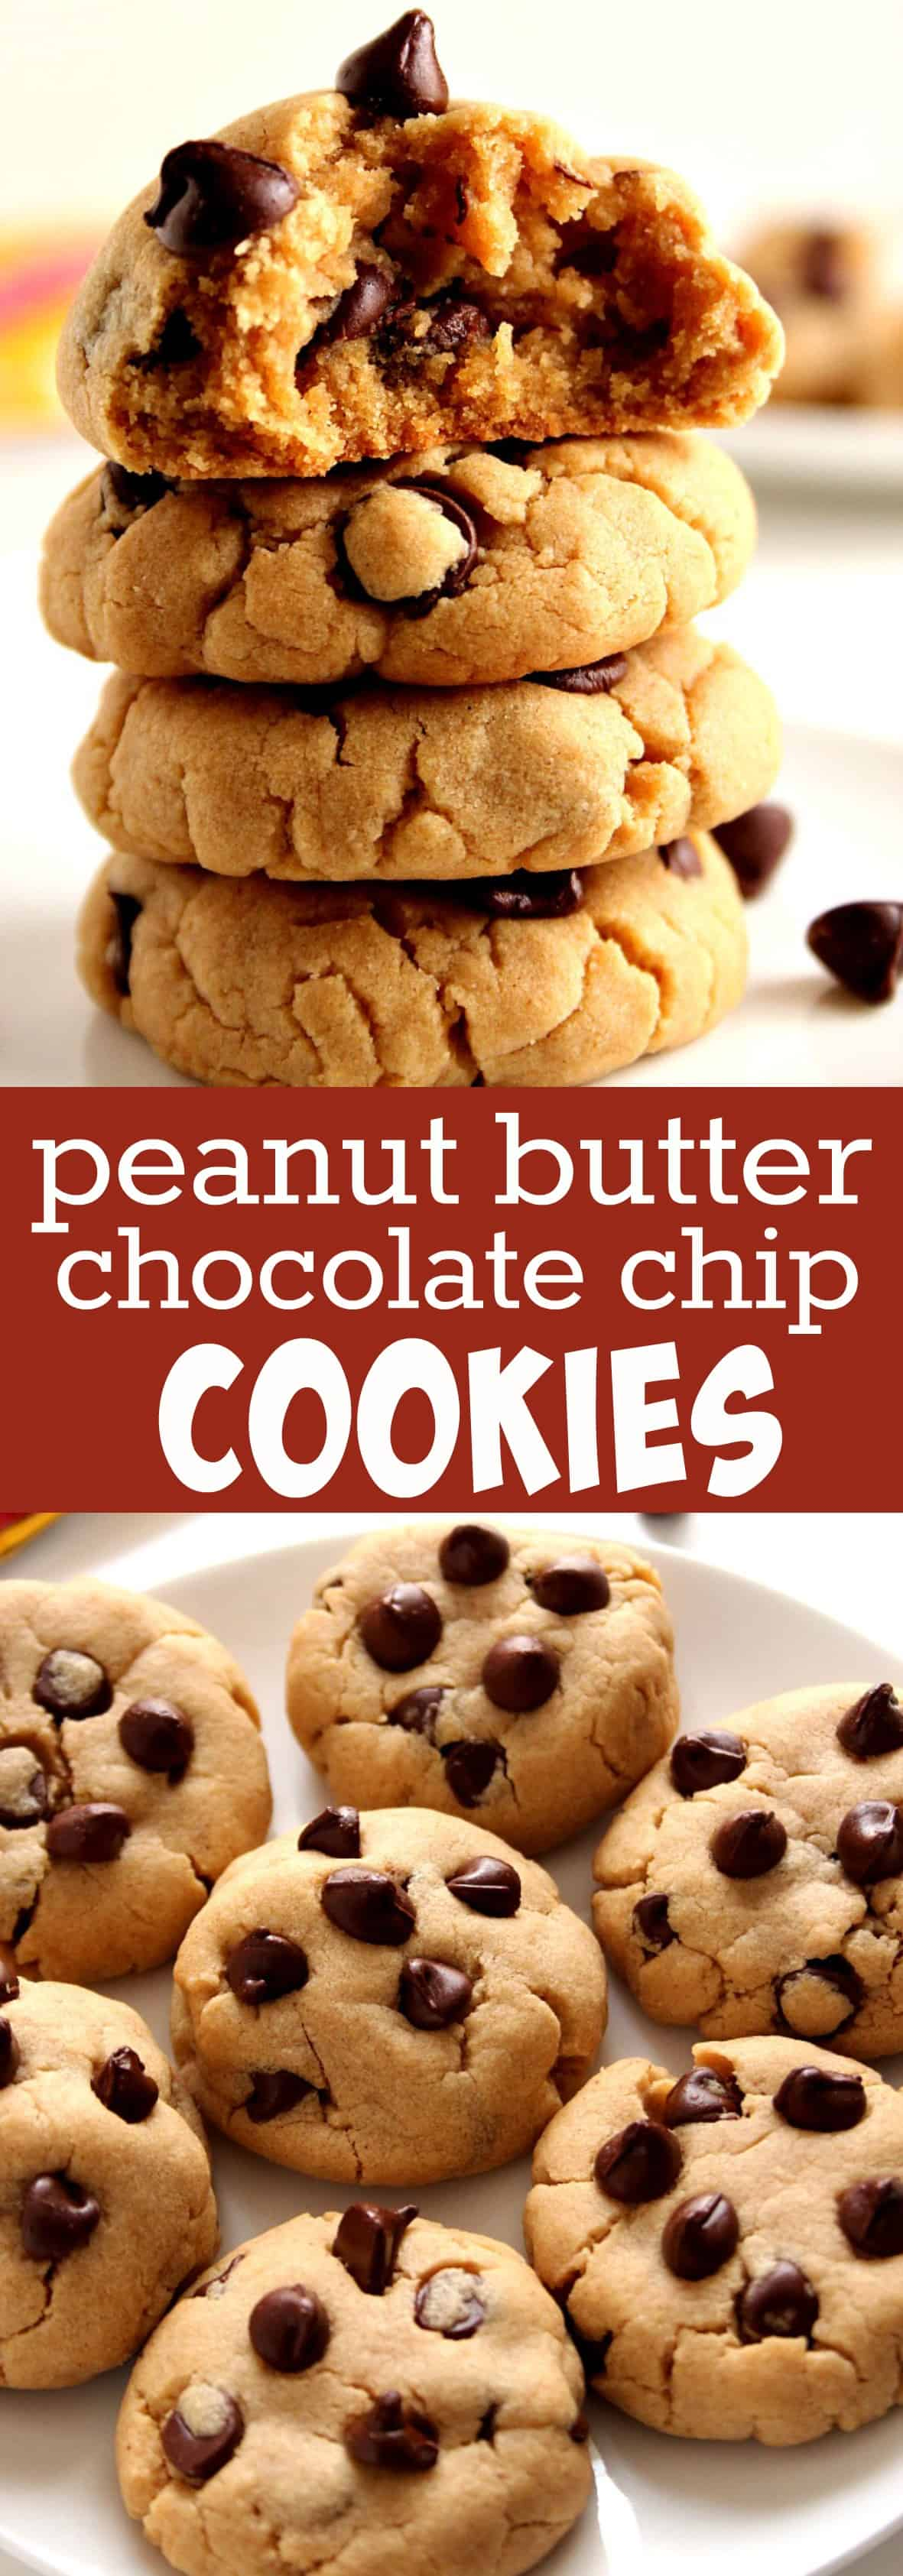 peanut butter chocolate chip cookies long Peanut Butter Chocolate Chip Cookies Recipe